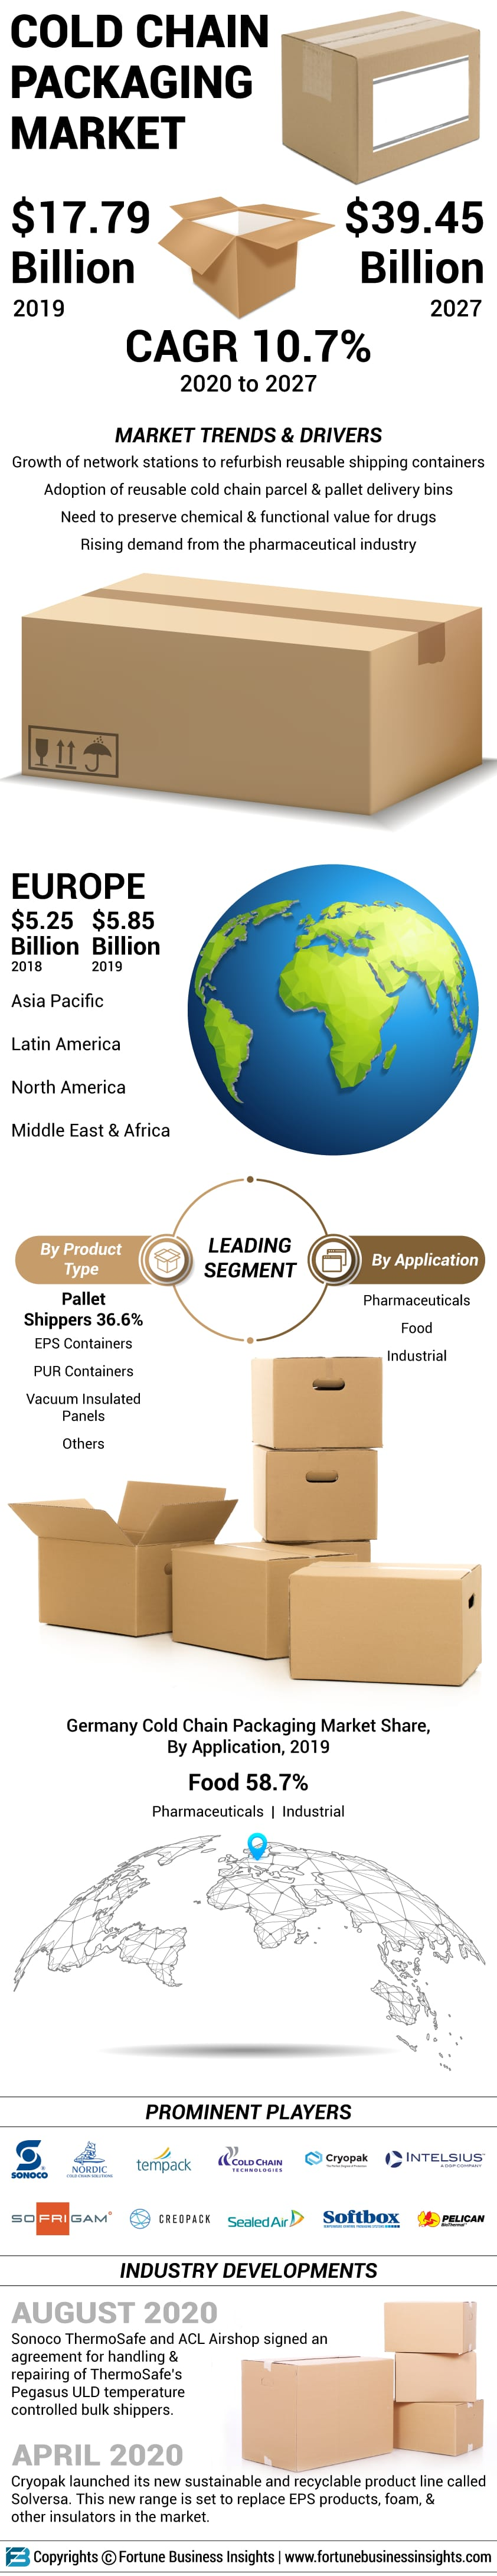 Cold Chain Packaging Market